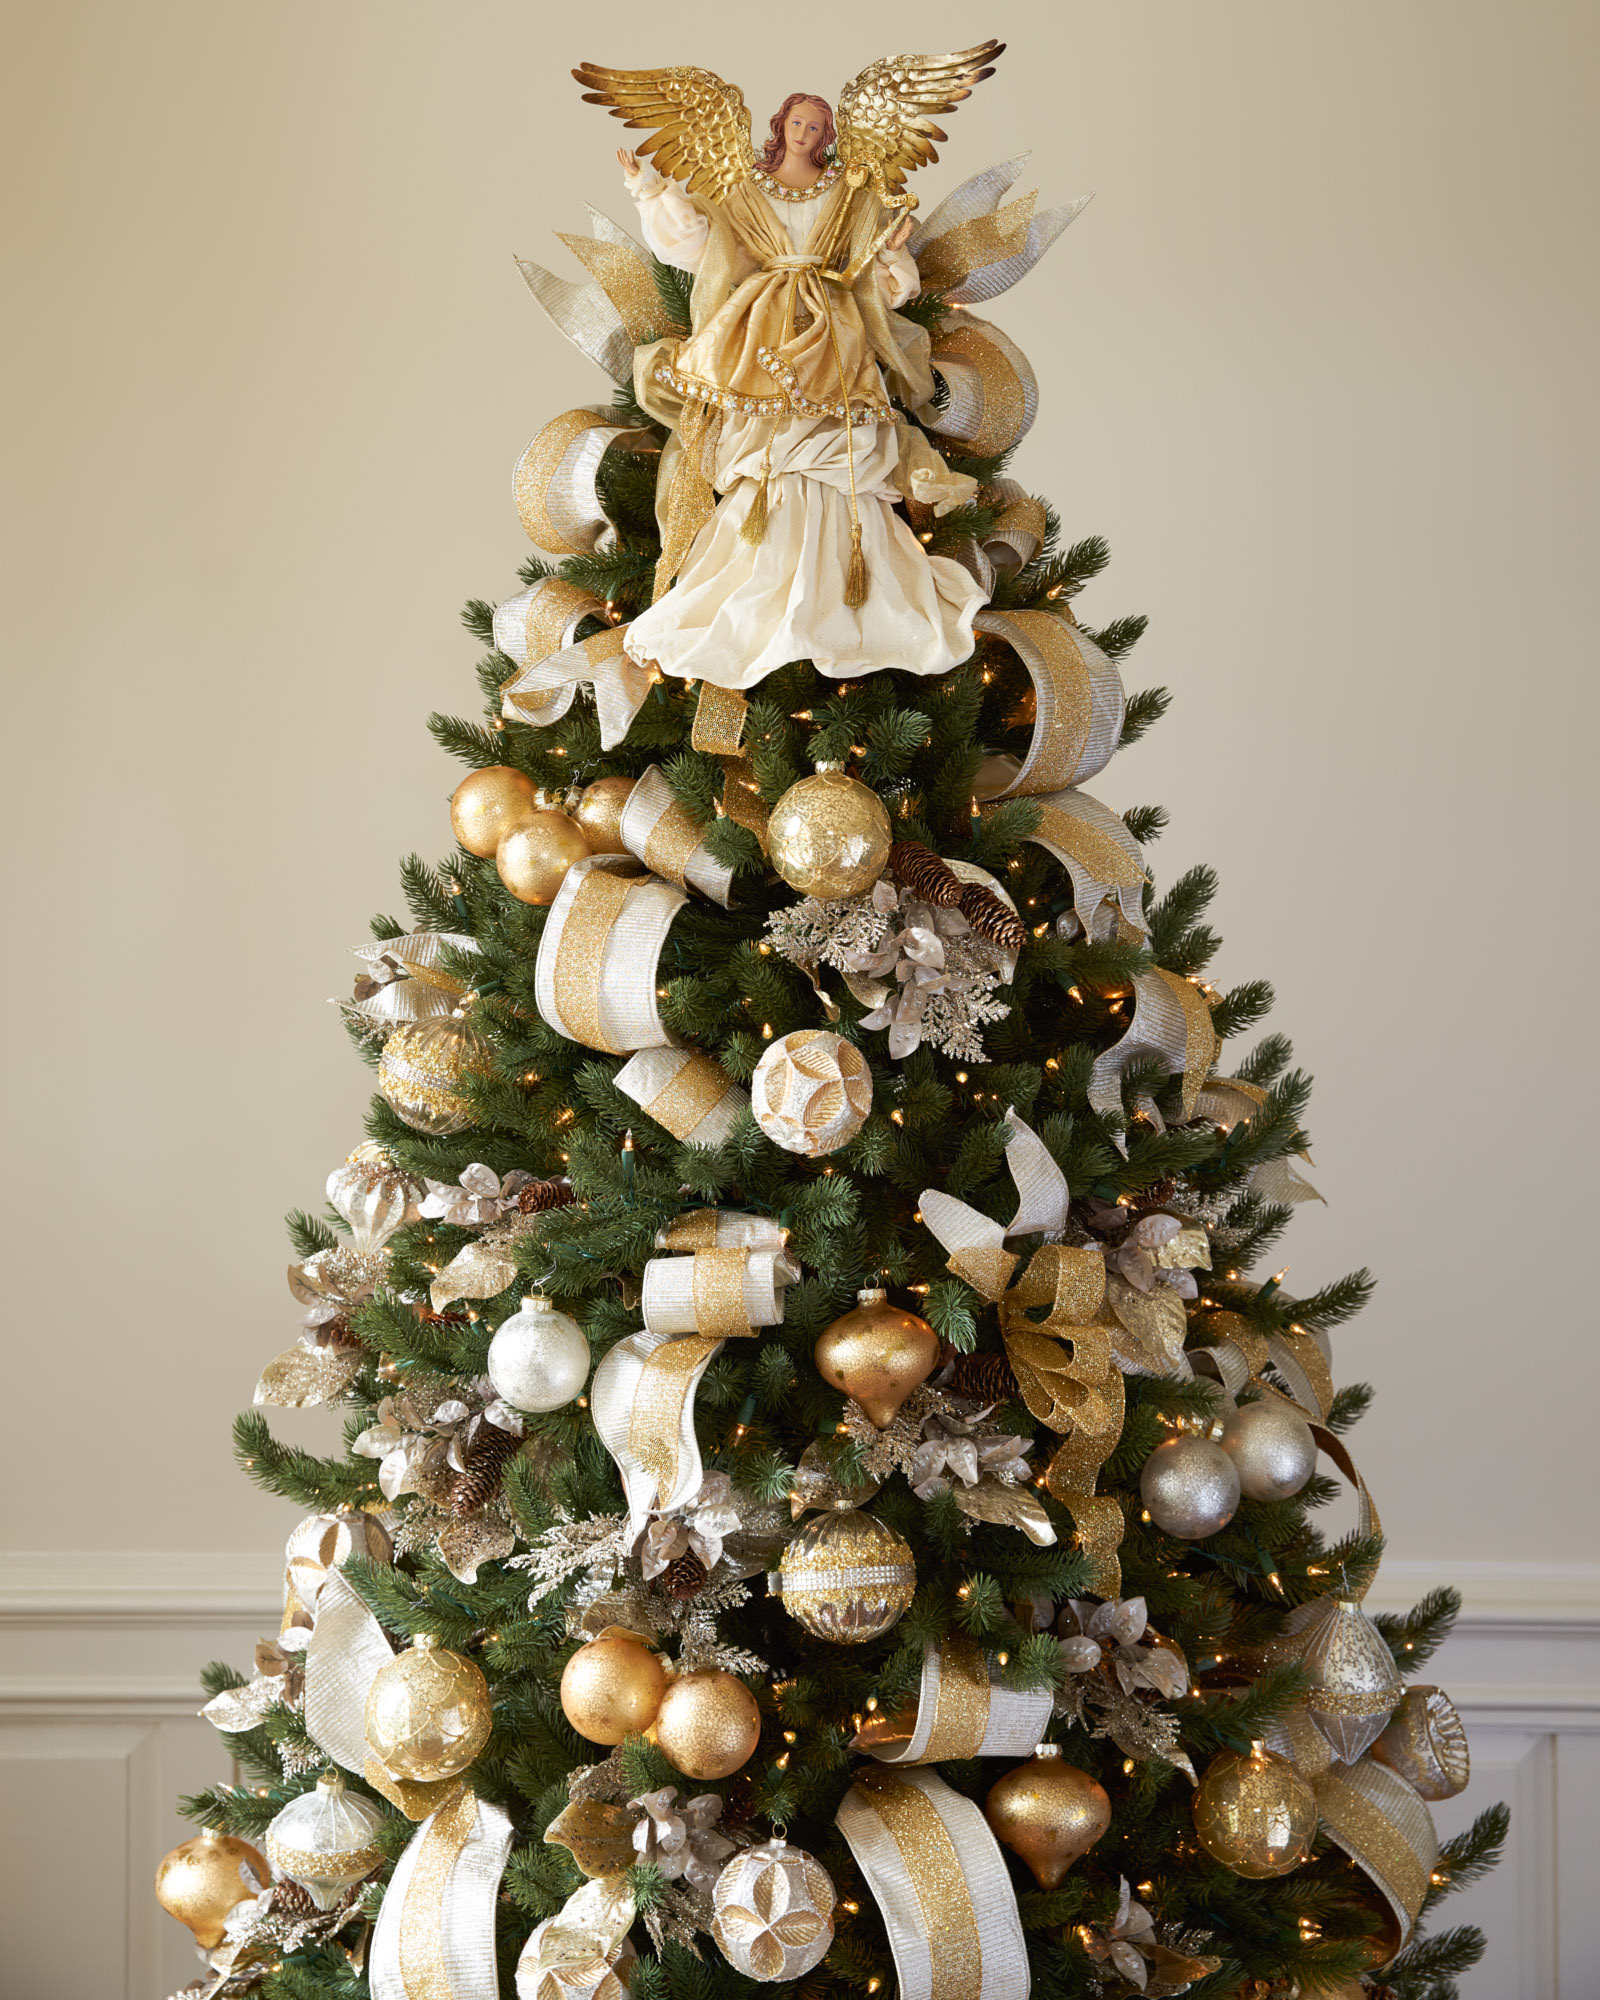 Christmas tree decorations silver and gold - Gold And Silver Christmas Tree Decorating Ideas Photo 22